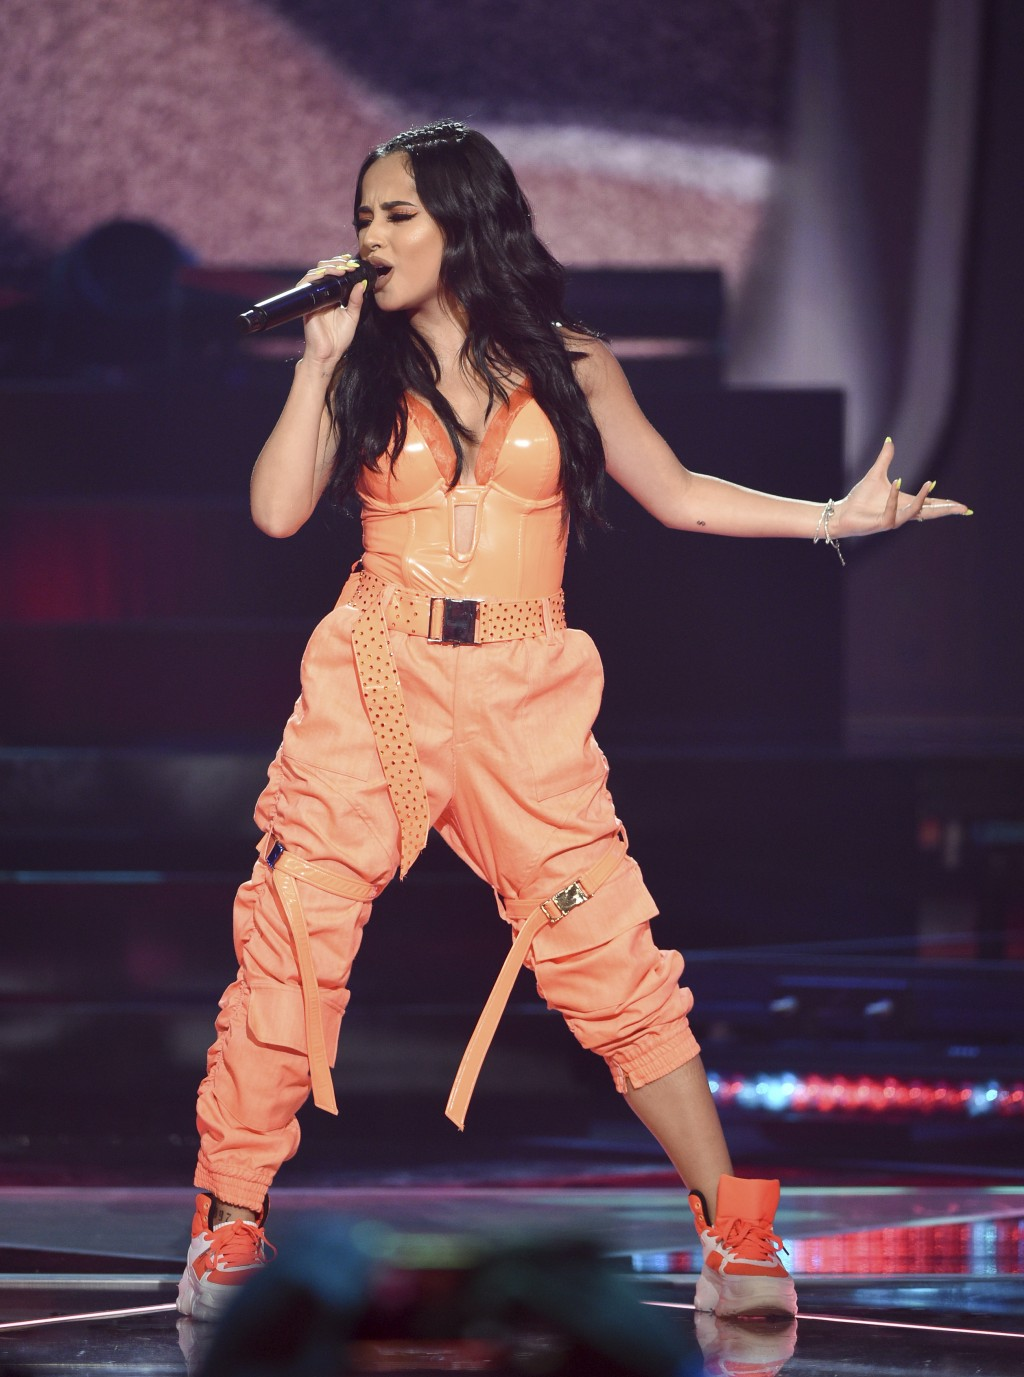 Singer Becky G performs at Amazon Music's Prime Day concert at the Hammerstein Ballroom on Wednesday, July 10, 2019, in New York. (Photo by Evan Agost